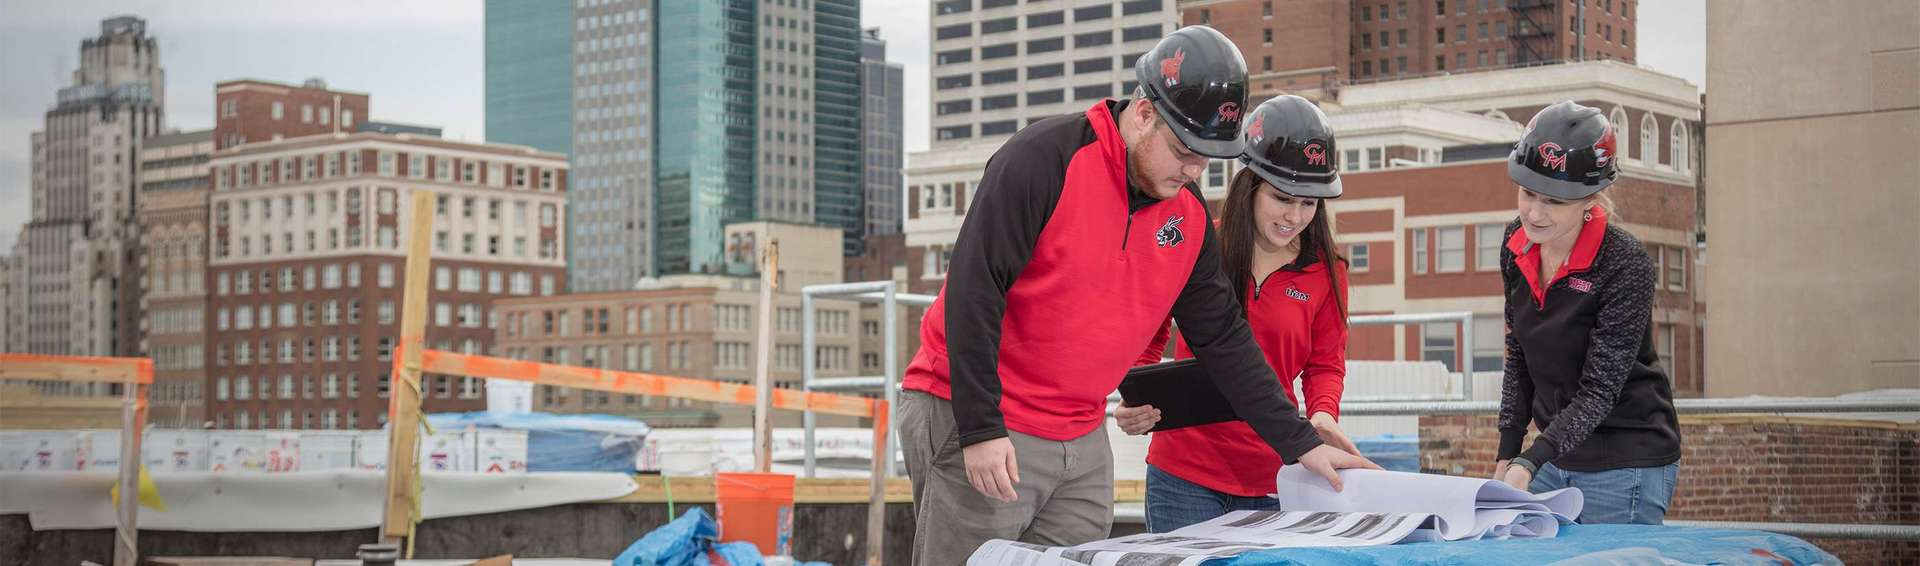 Three students, two female and one male, are standing on the roof of a building in a city, looking at plans. They are wearing UCM shirts and hard hats.